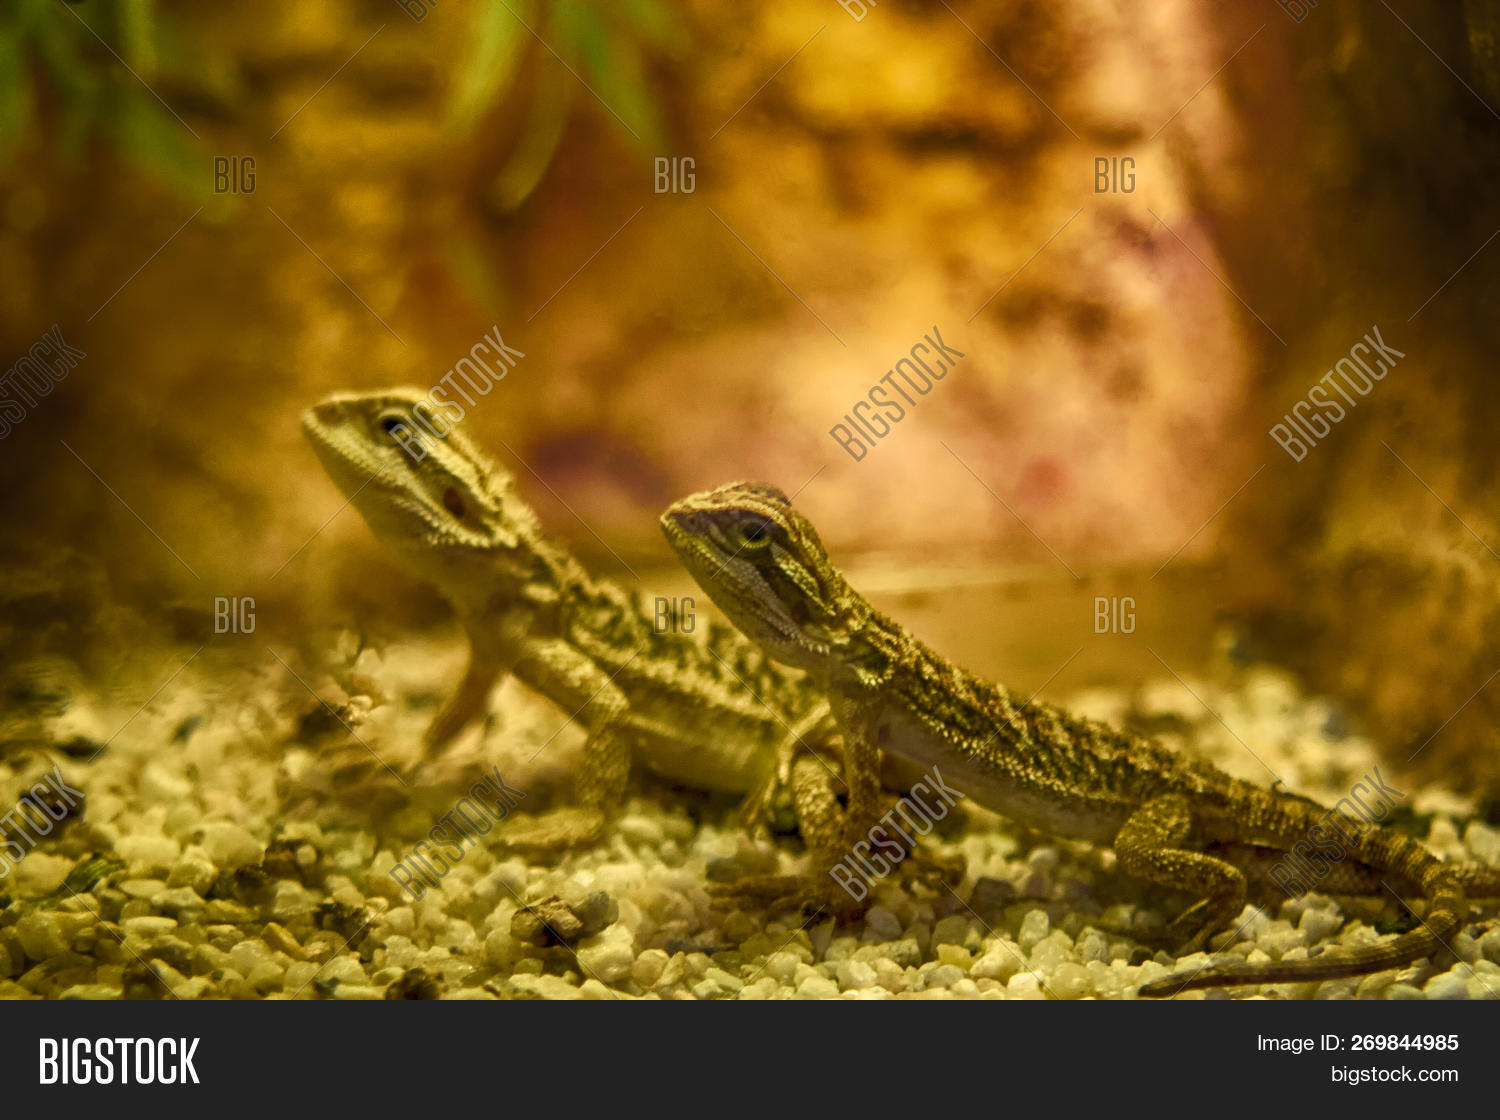 Bearded Dragon Close Image & Photo (Free Trial) | Bigstock